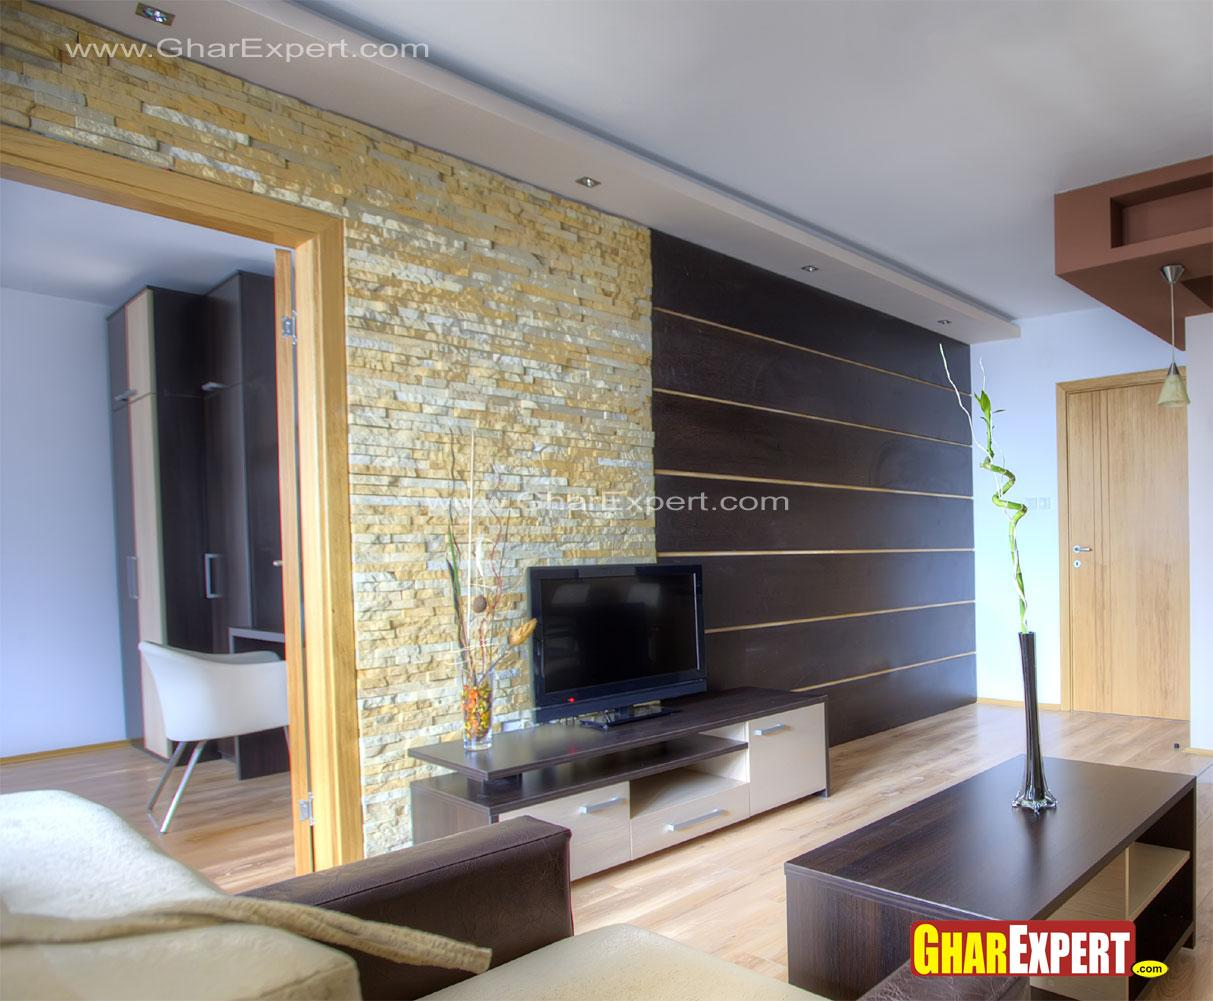 Lcd unit wall design in living room gharexpert - Lcd wall designs living room ...